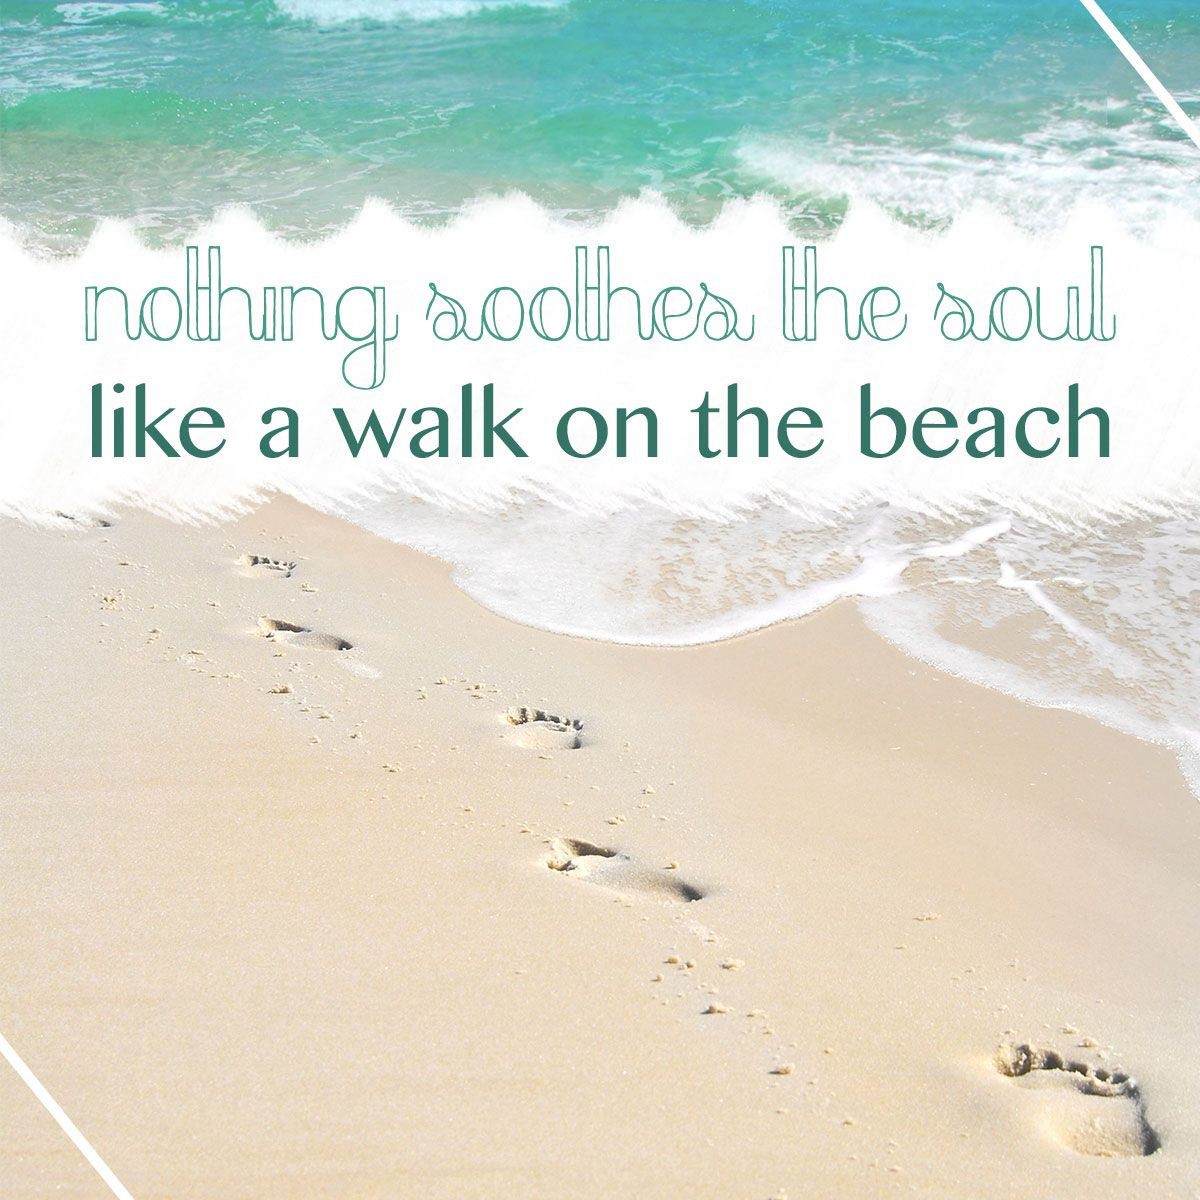 Who Could Use A Long Walk On The Beach Beach Quotes Beach